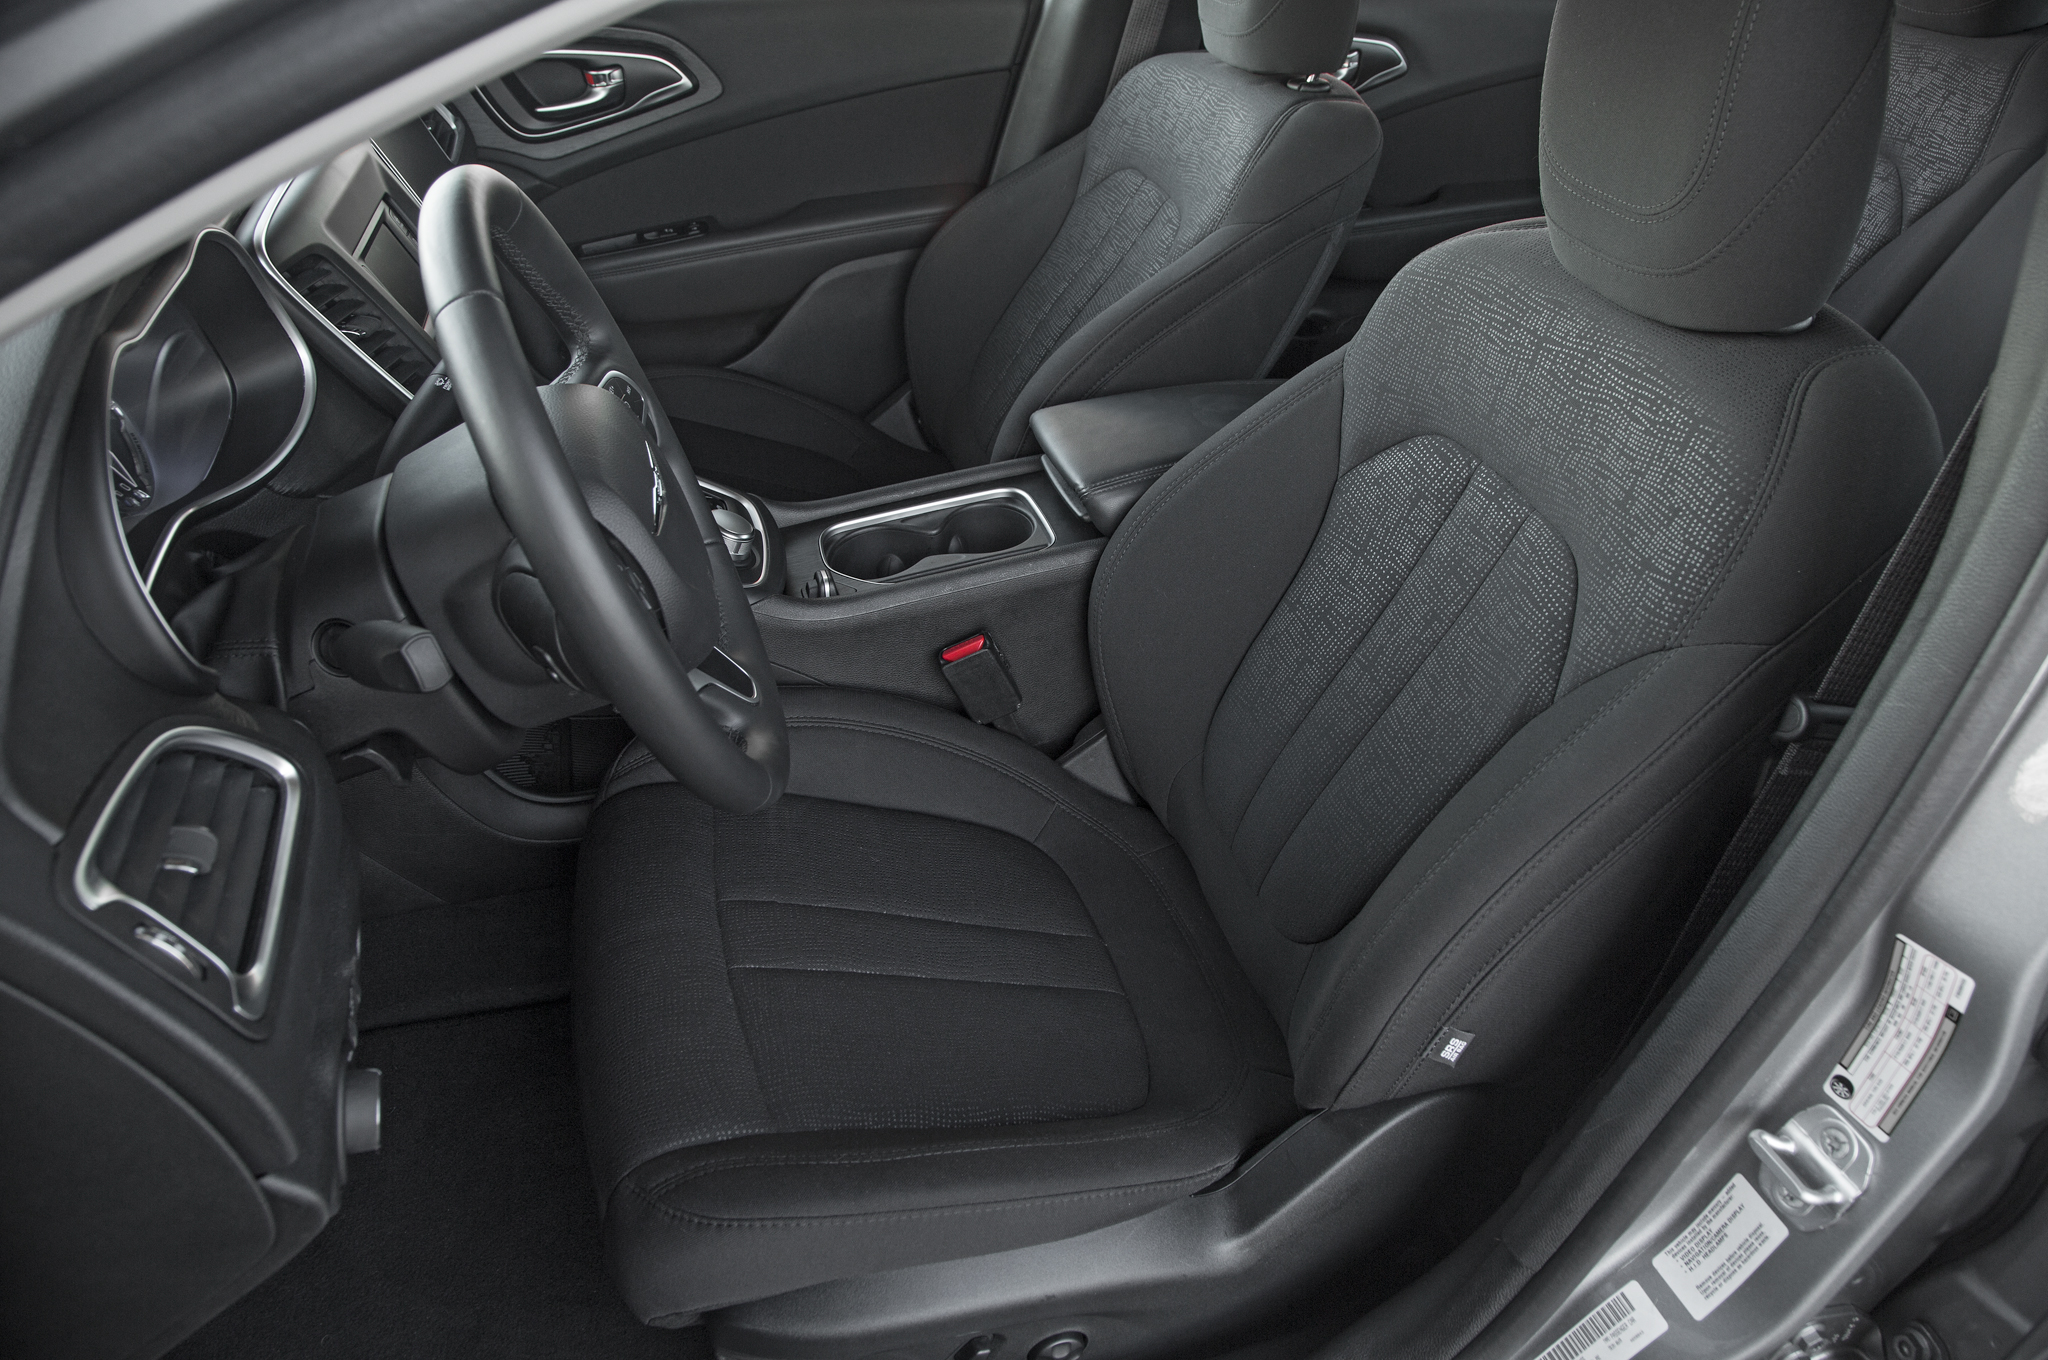 2015 Chrysler 200 Front Interior (View 8 of 11)